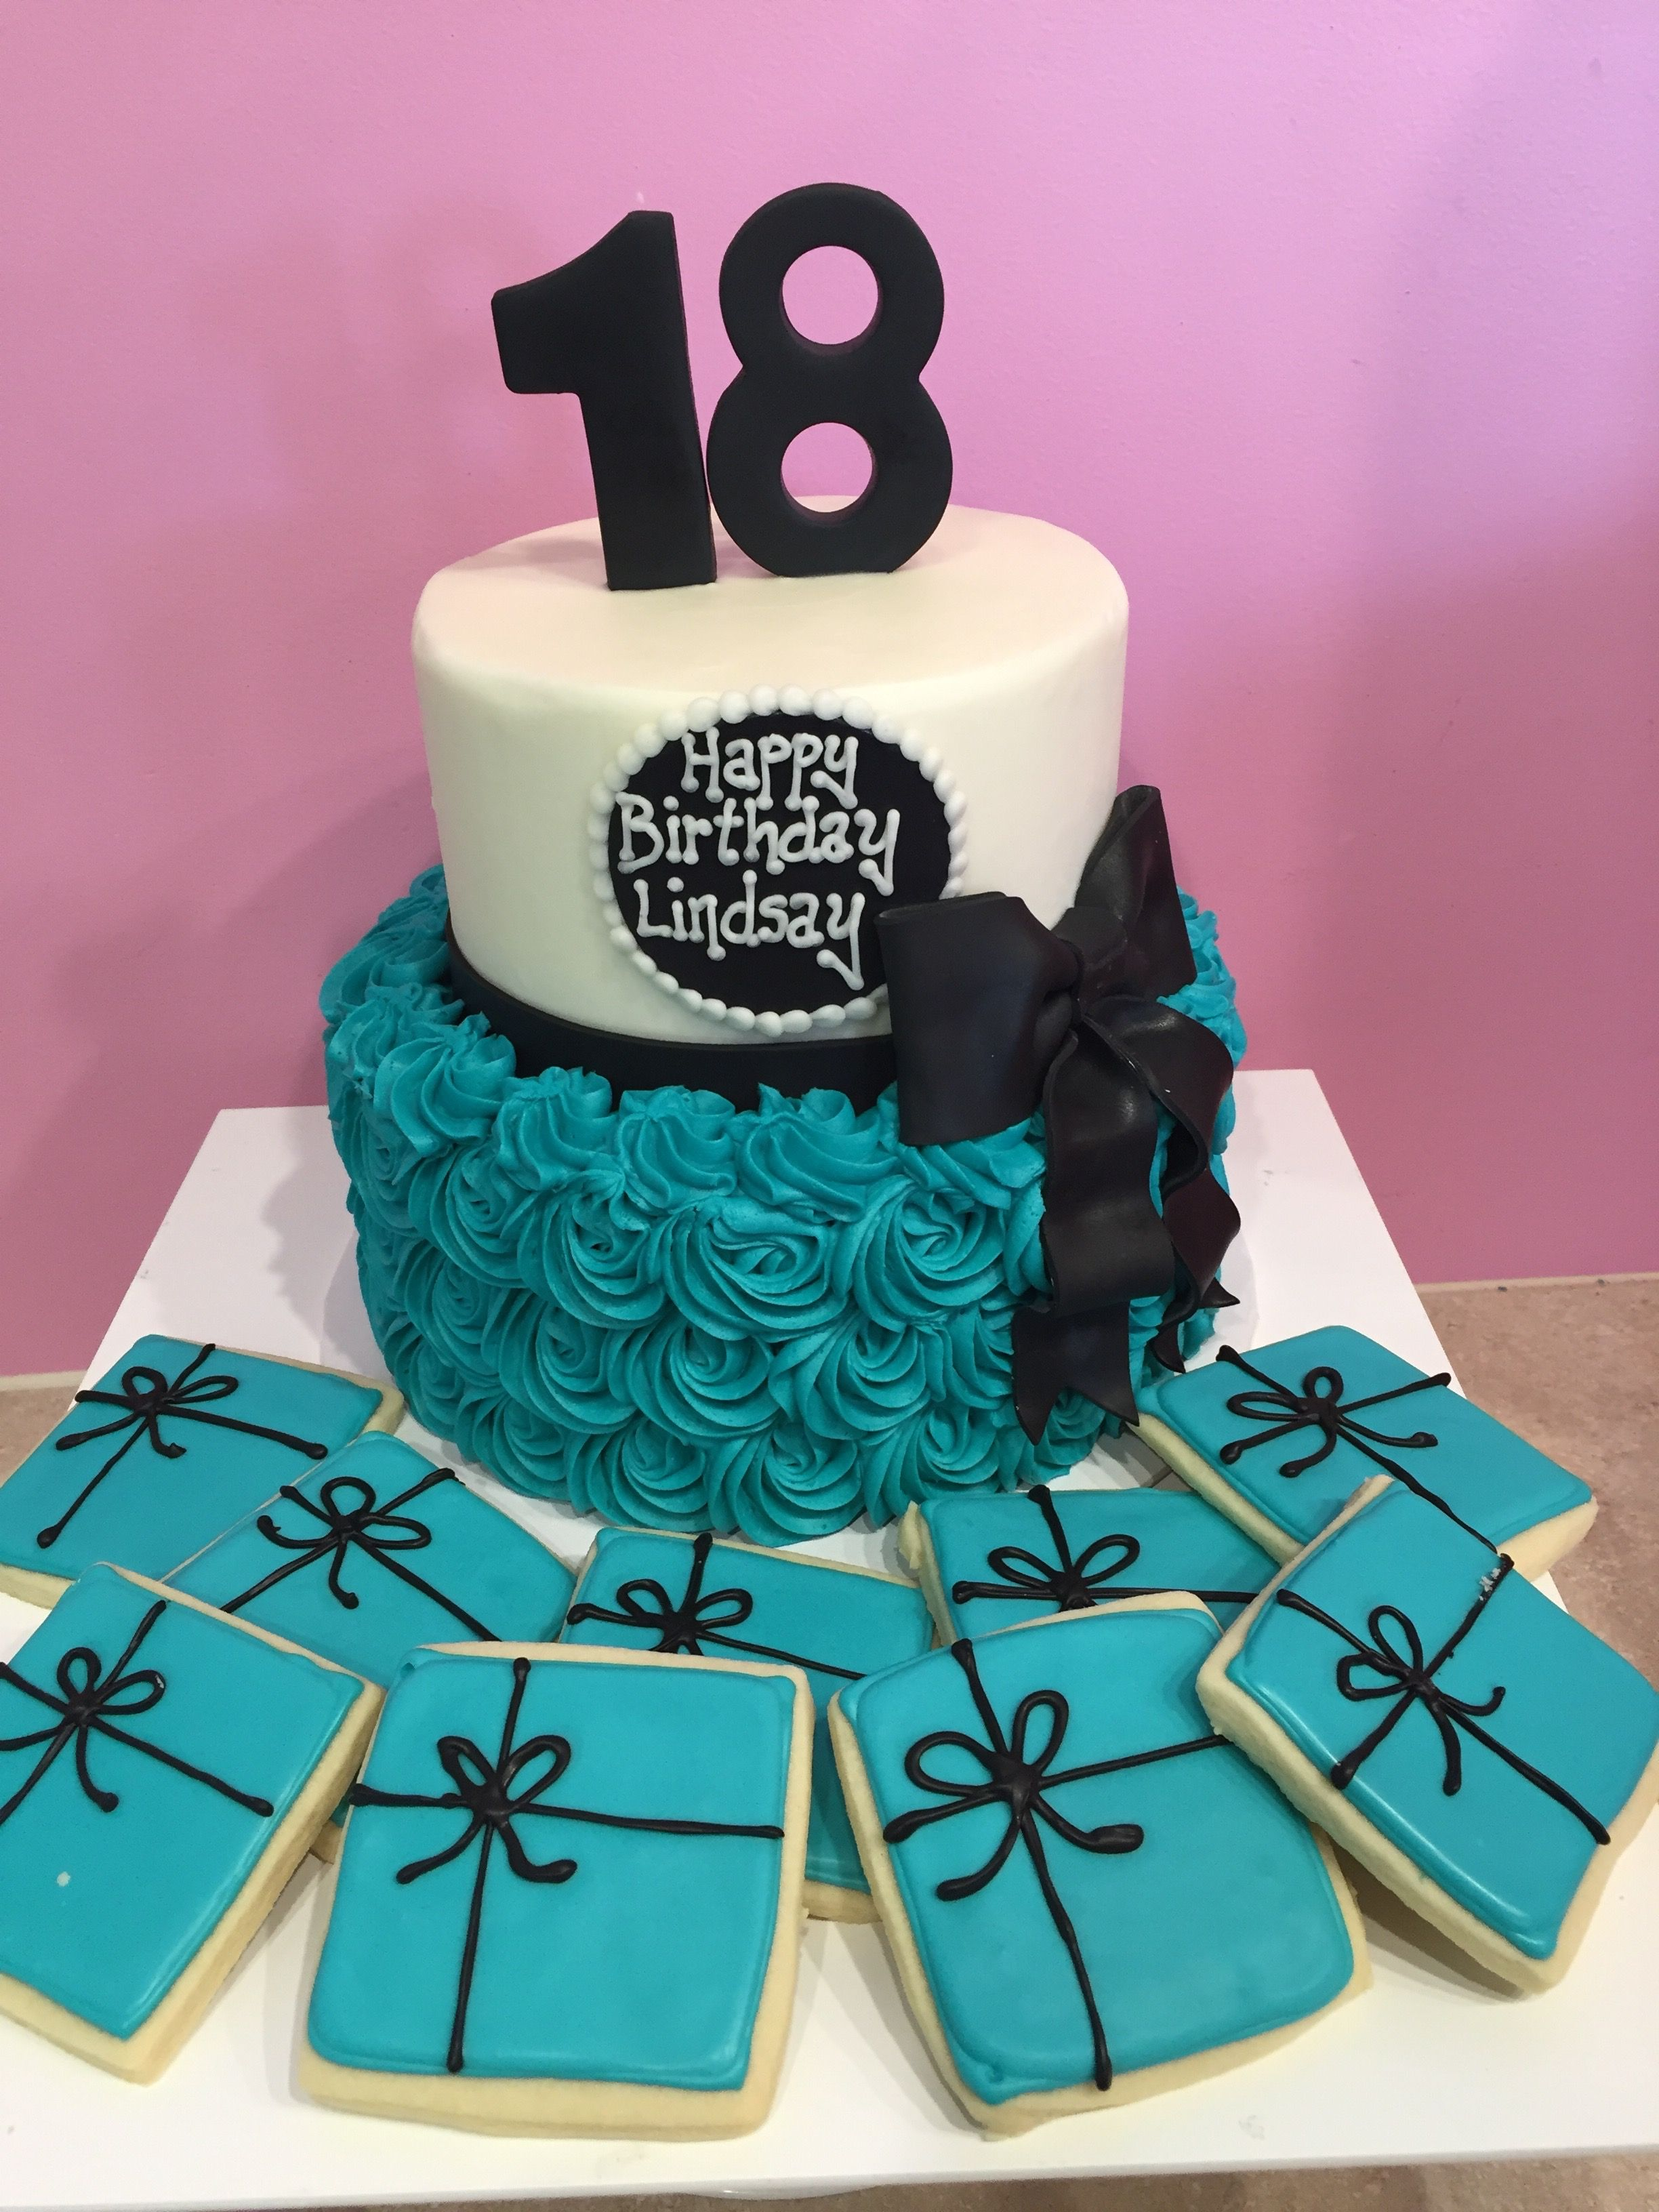 18th Birthday Cake In Blue Rosette With Black Bow And Matching